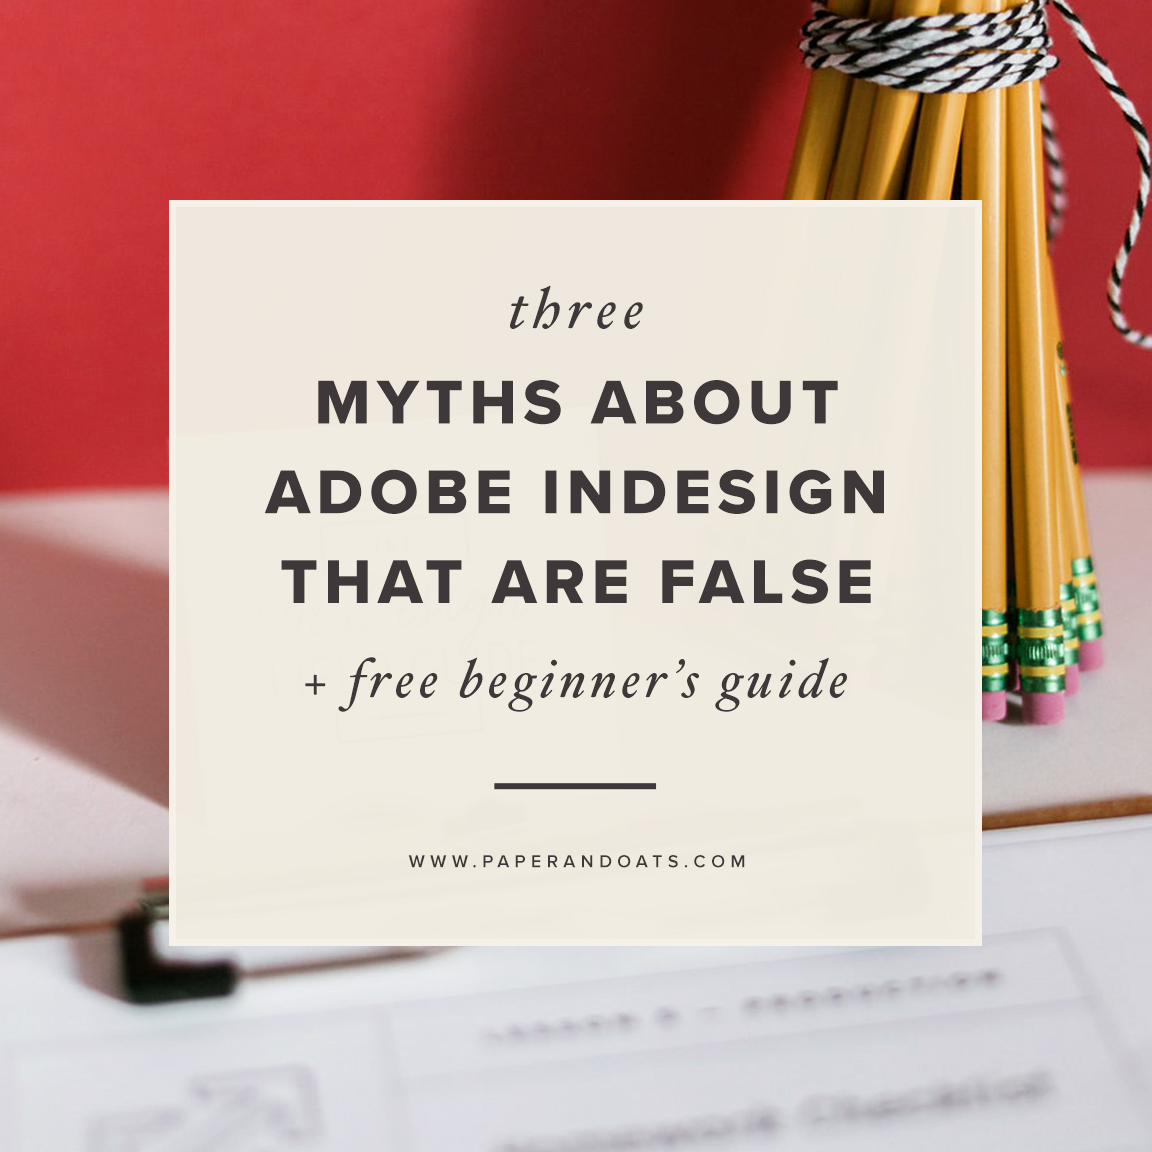 3 myths about using Adobe InDesign that are totally false (+free beginner's design guide) — by Paper + Oats